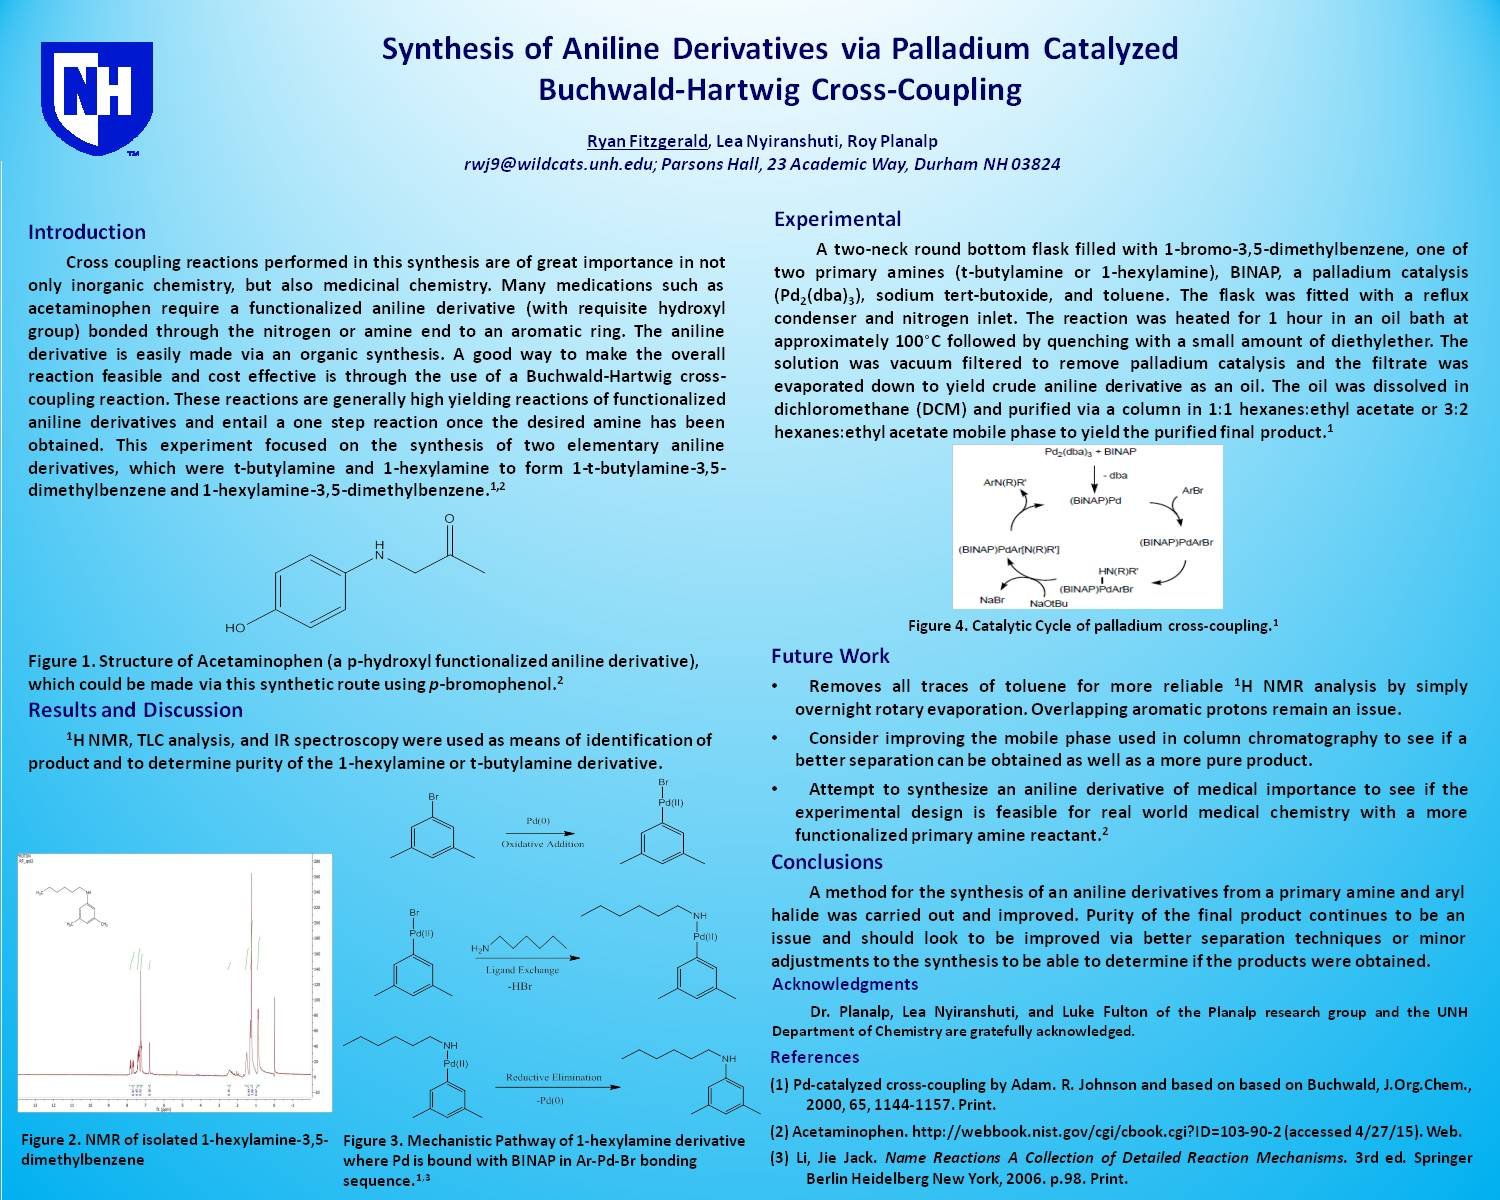 Synthesis Of Aniline Derivatives Via Palladium Catalyzed Buchwald-Hartwig Cross-Coupling by rwj9